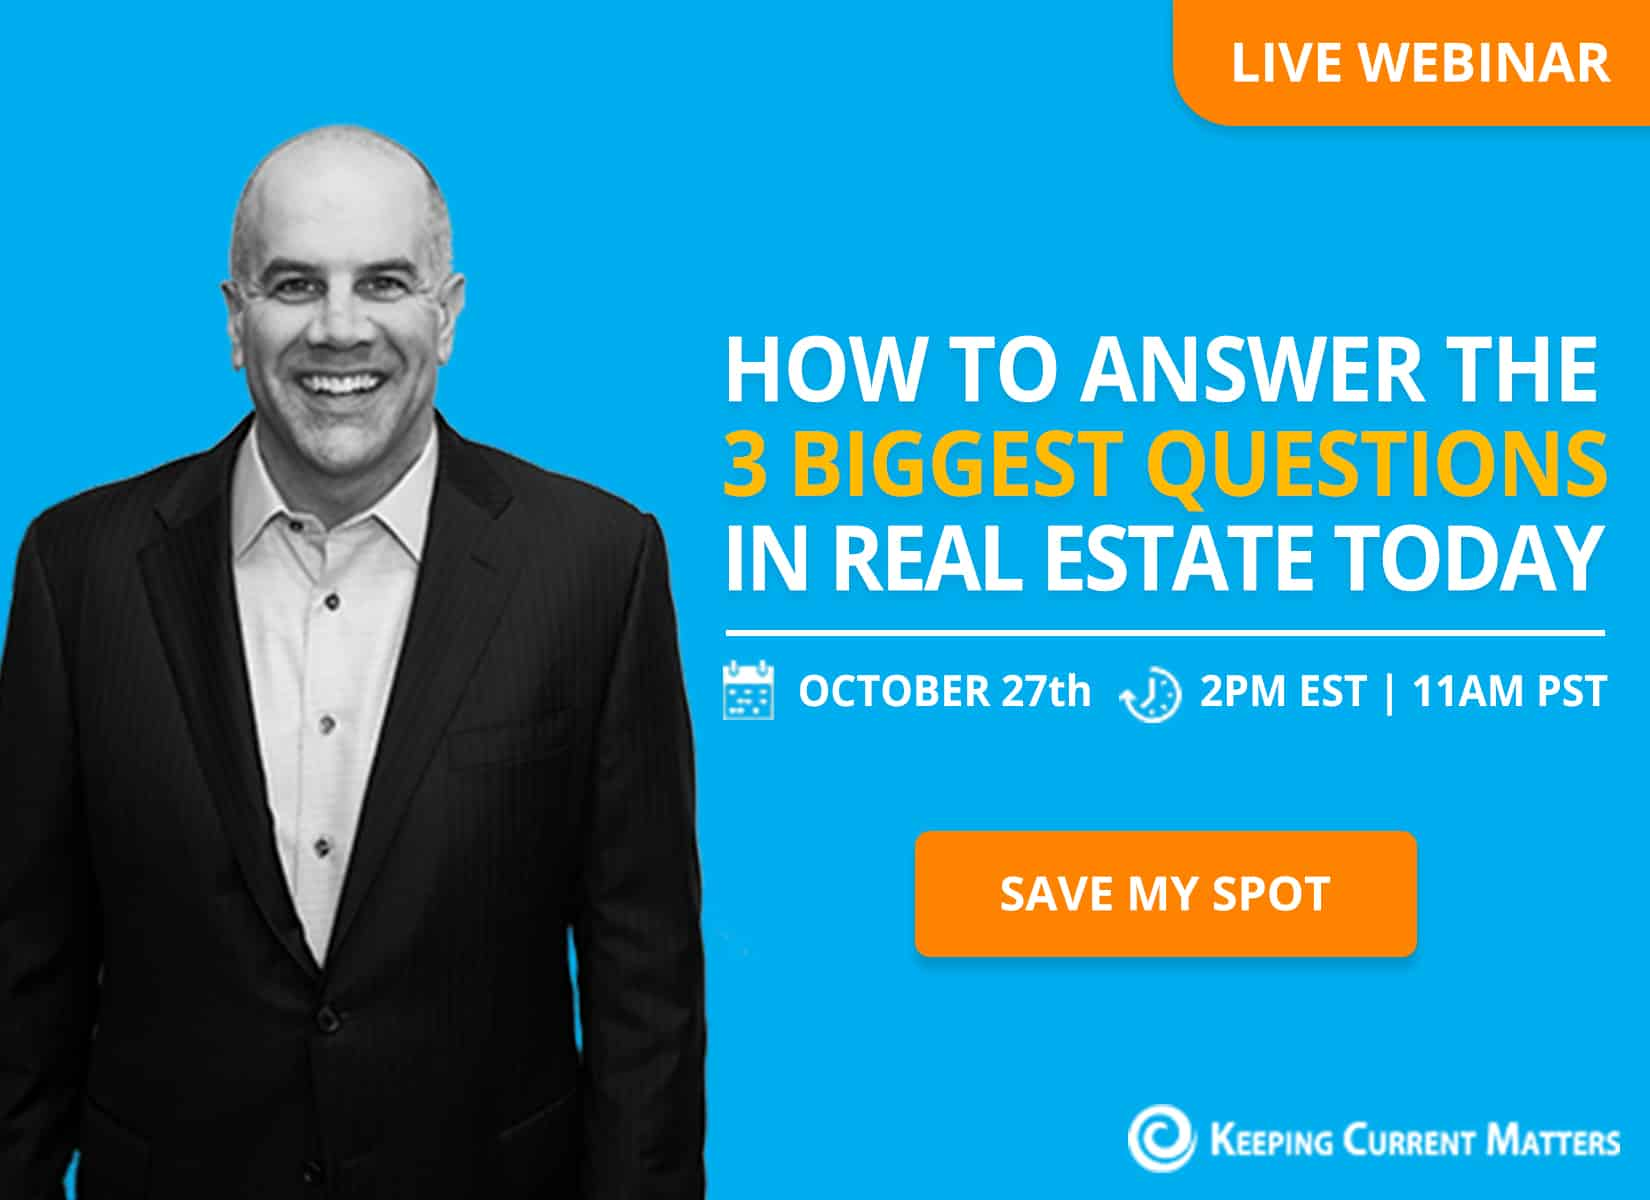 How to Answer the 3 Biggest Questions in Real Estate Today [LIVE WEBINAR]